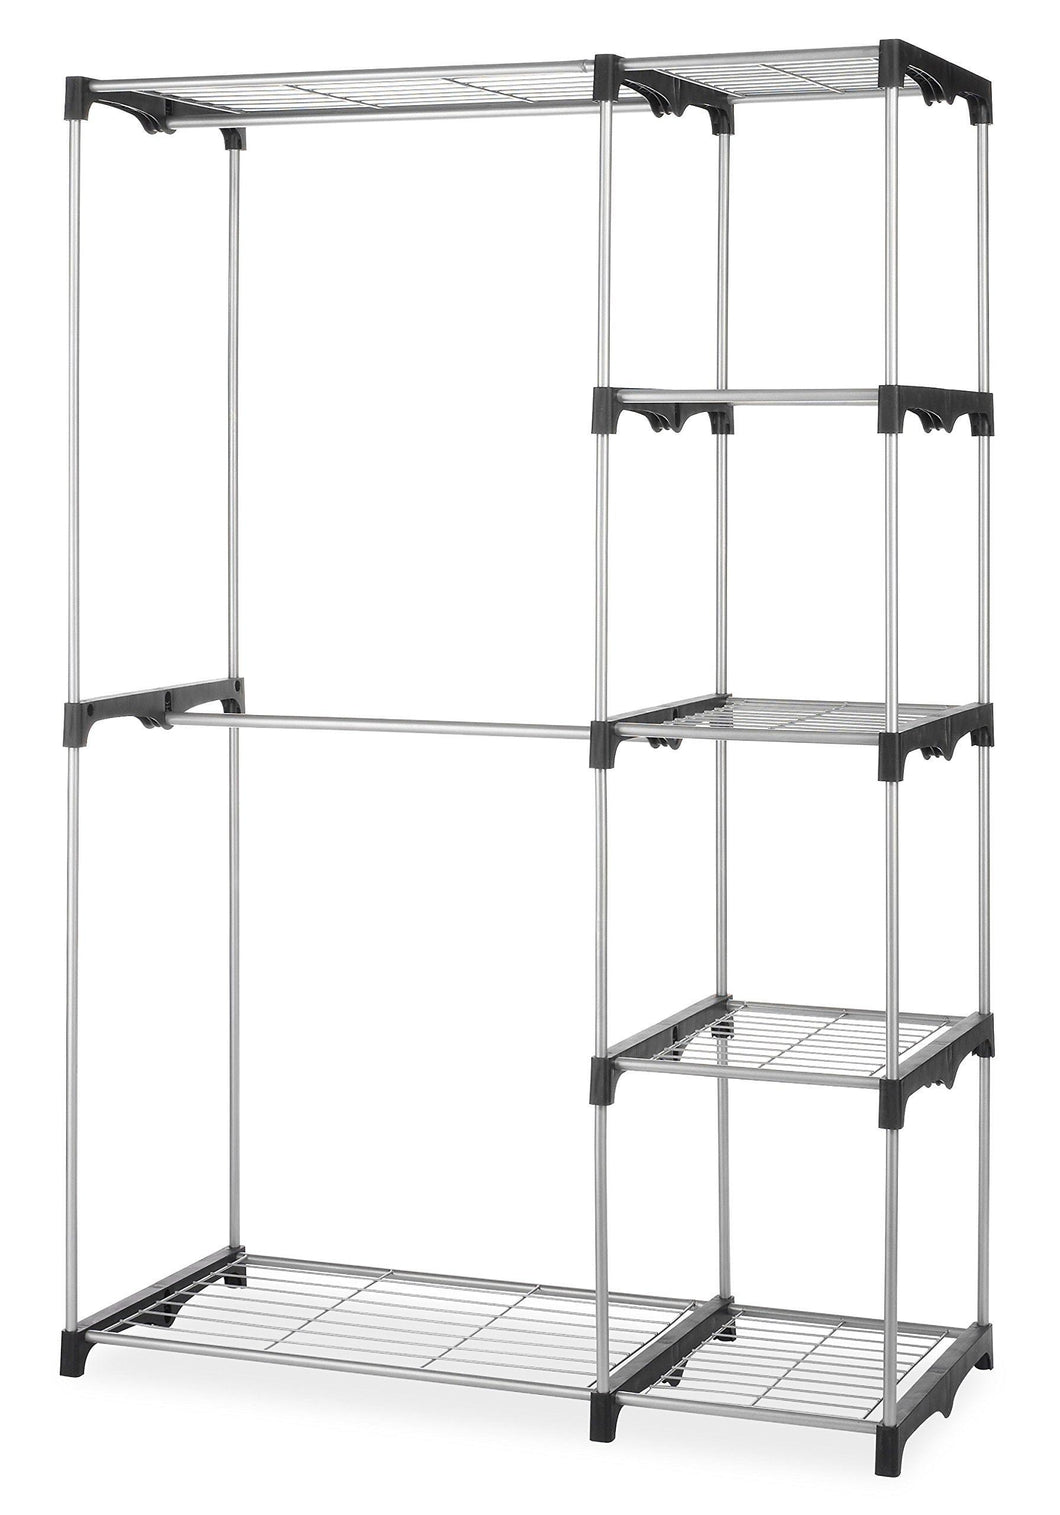 Budget whitmor double rod freestanding closet heavy duty storage organizer